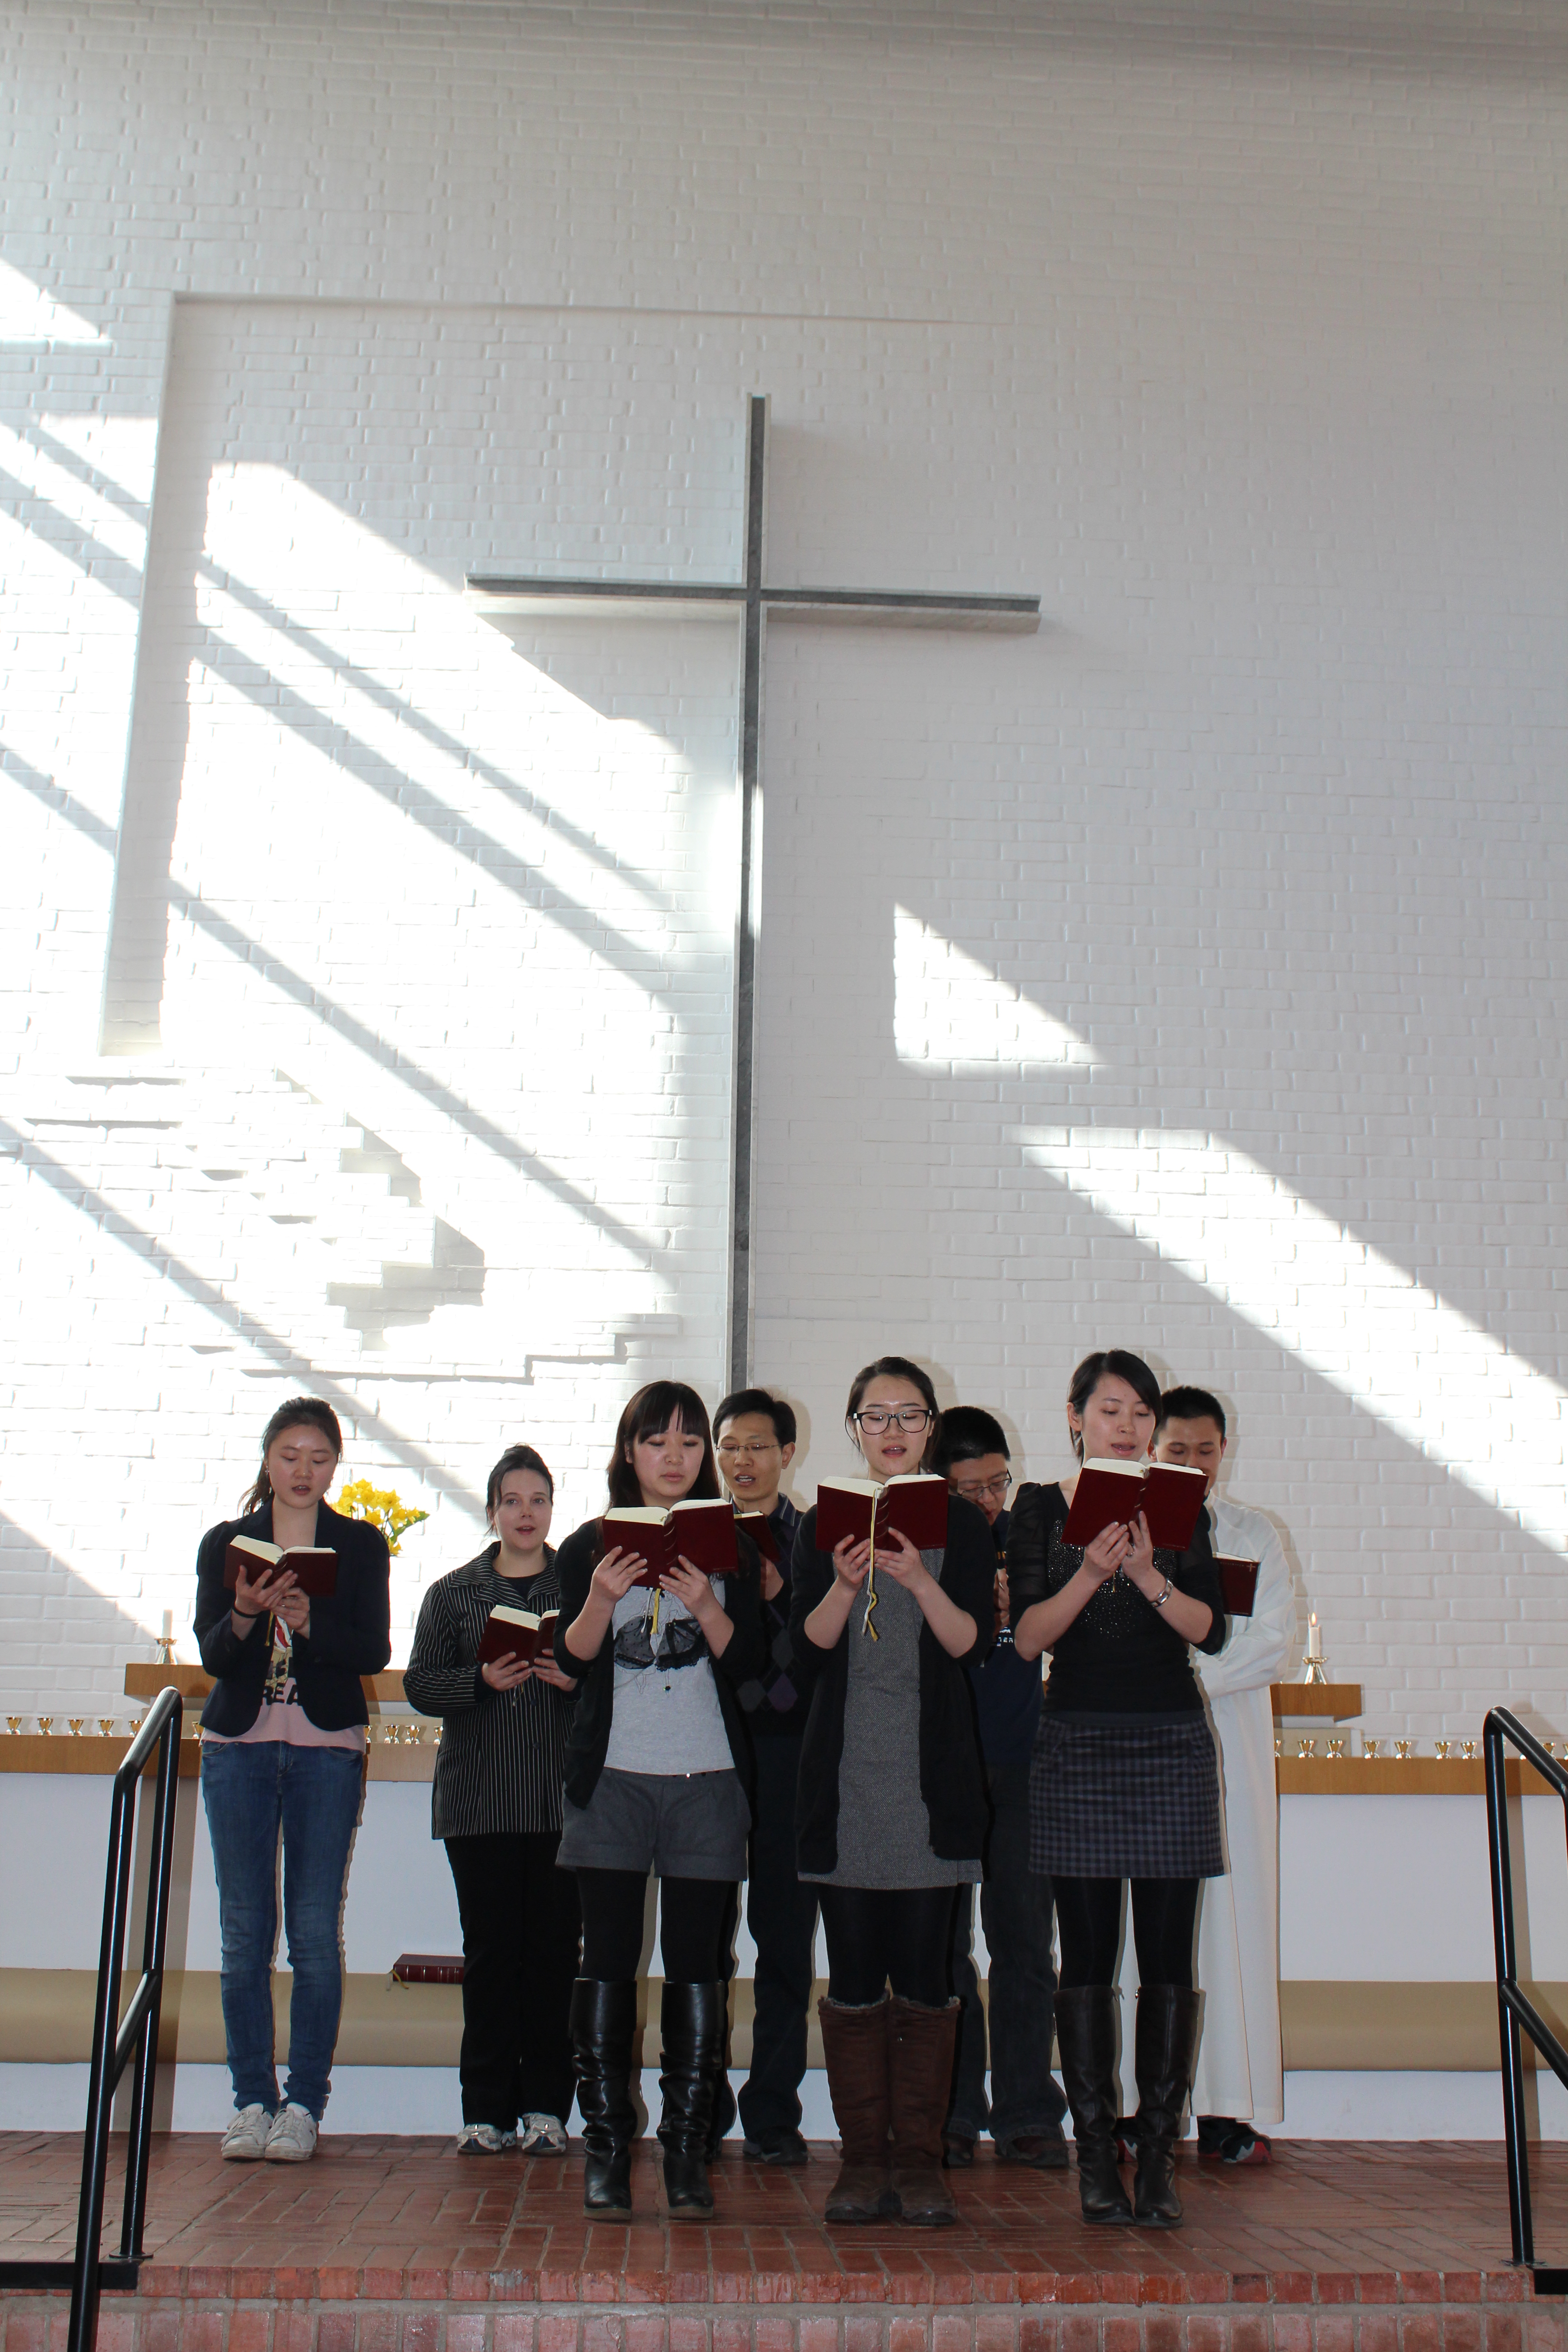 There are currently several thousand Chinese people living in Finland, several hundred out of which are Christians.